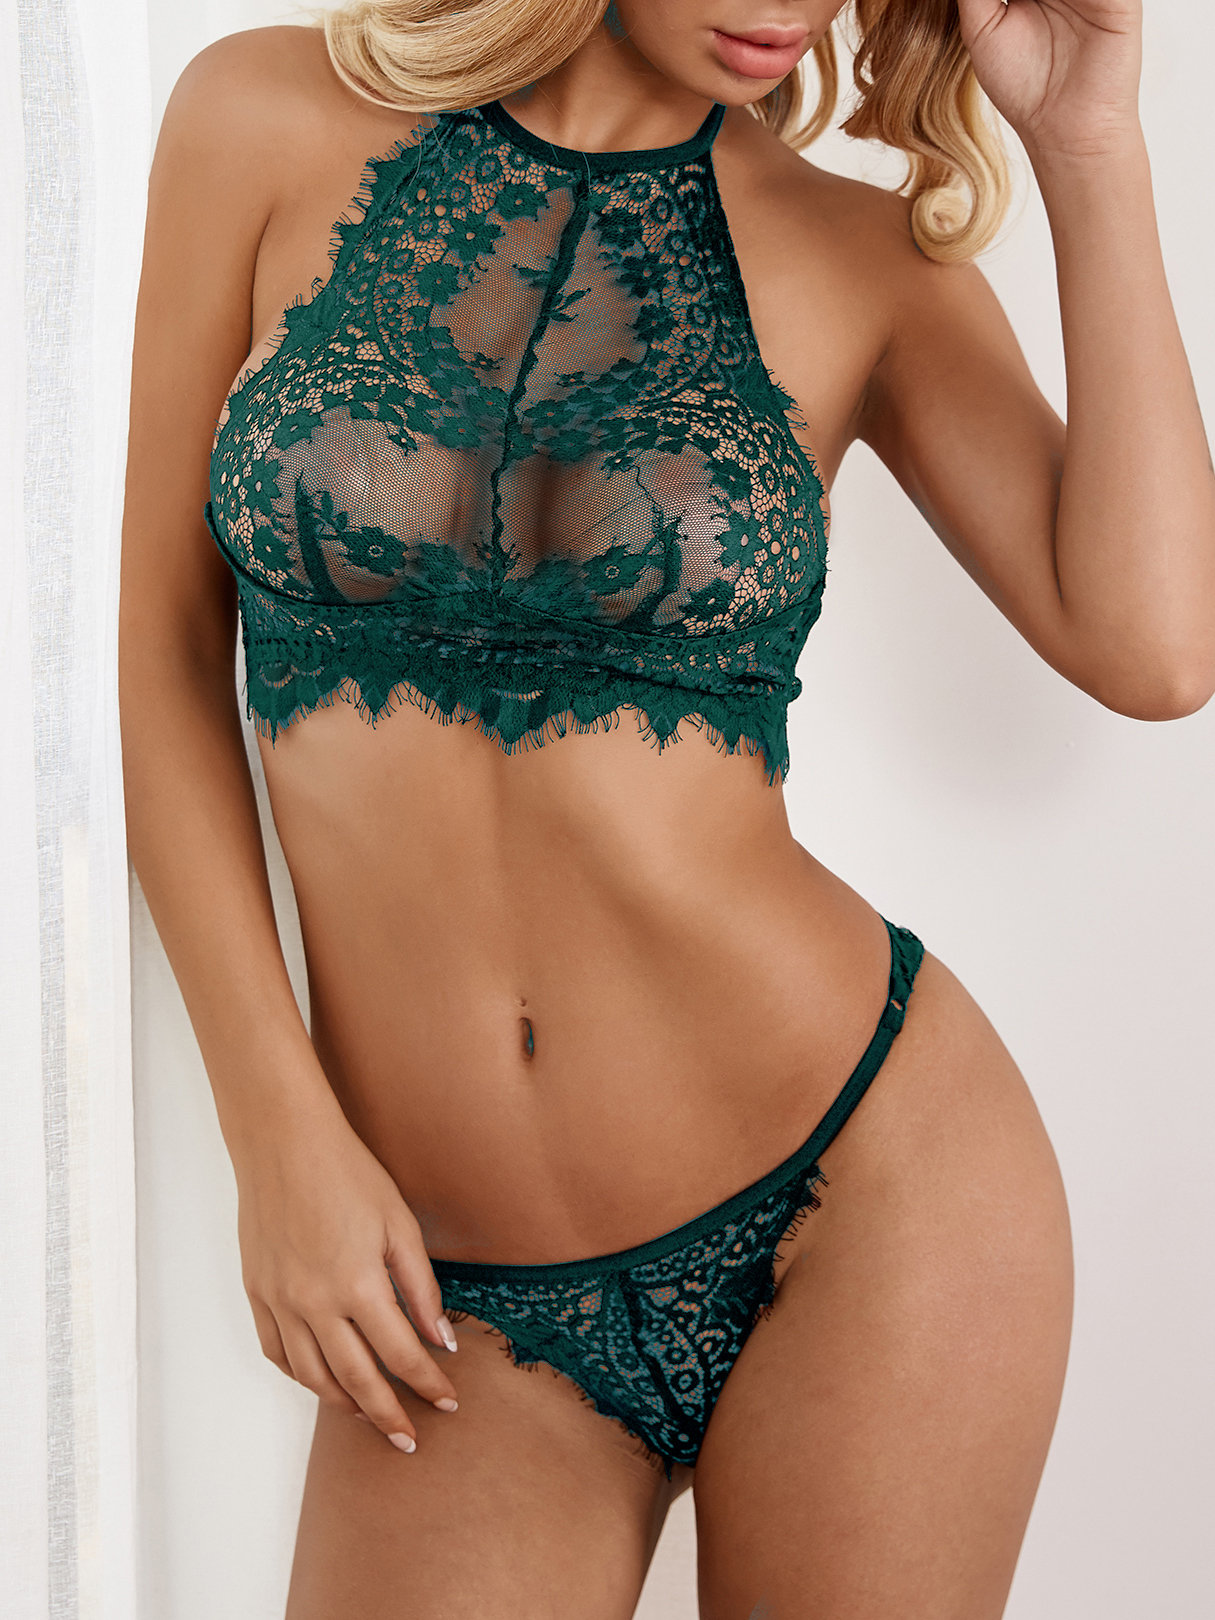 Green Sexy Delicate See-through Eyelash Trim Halter Lingerie Set without Stockings sexy black lace lingerie set with no falsies